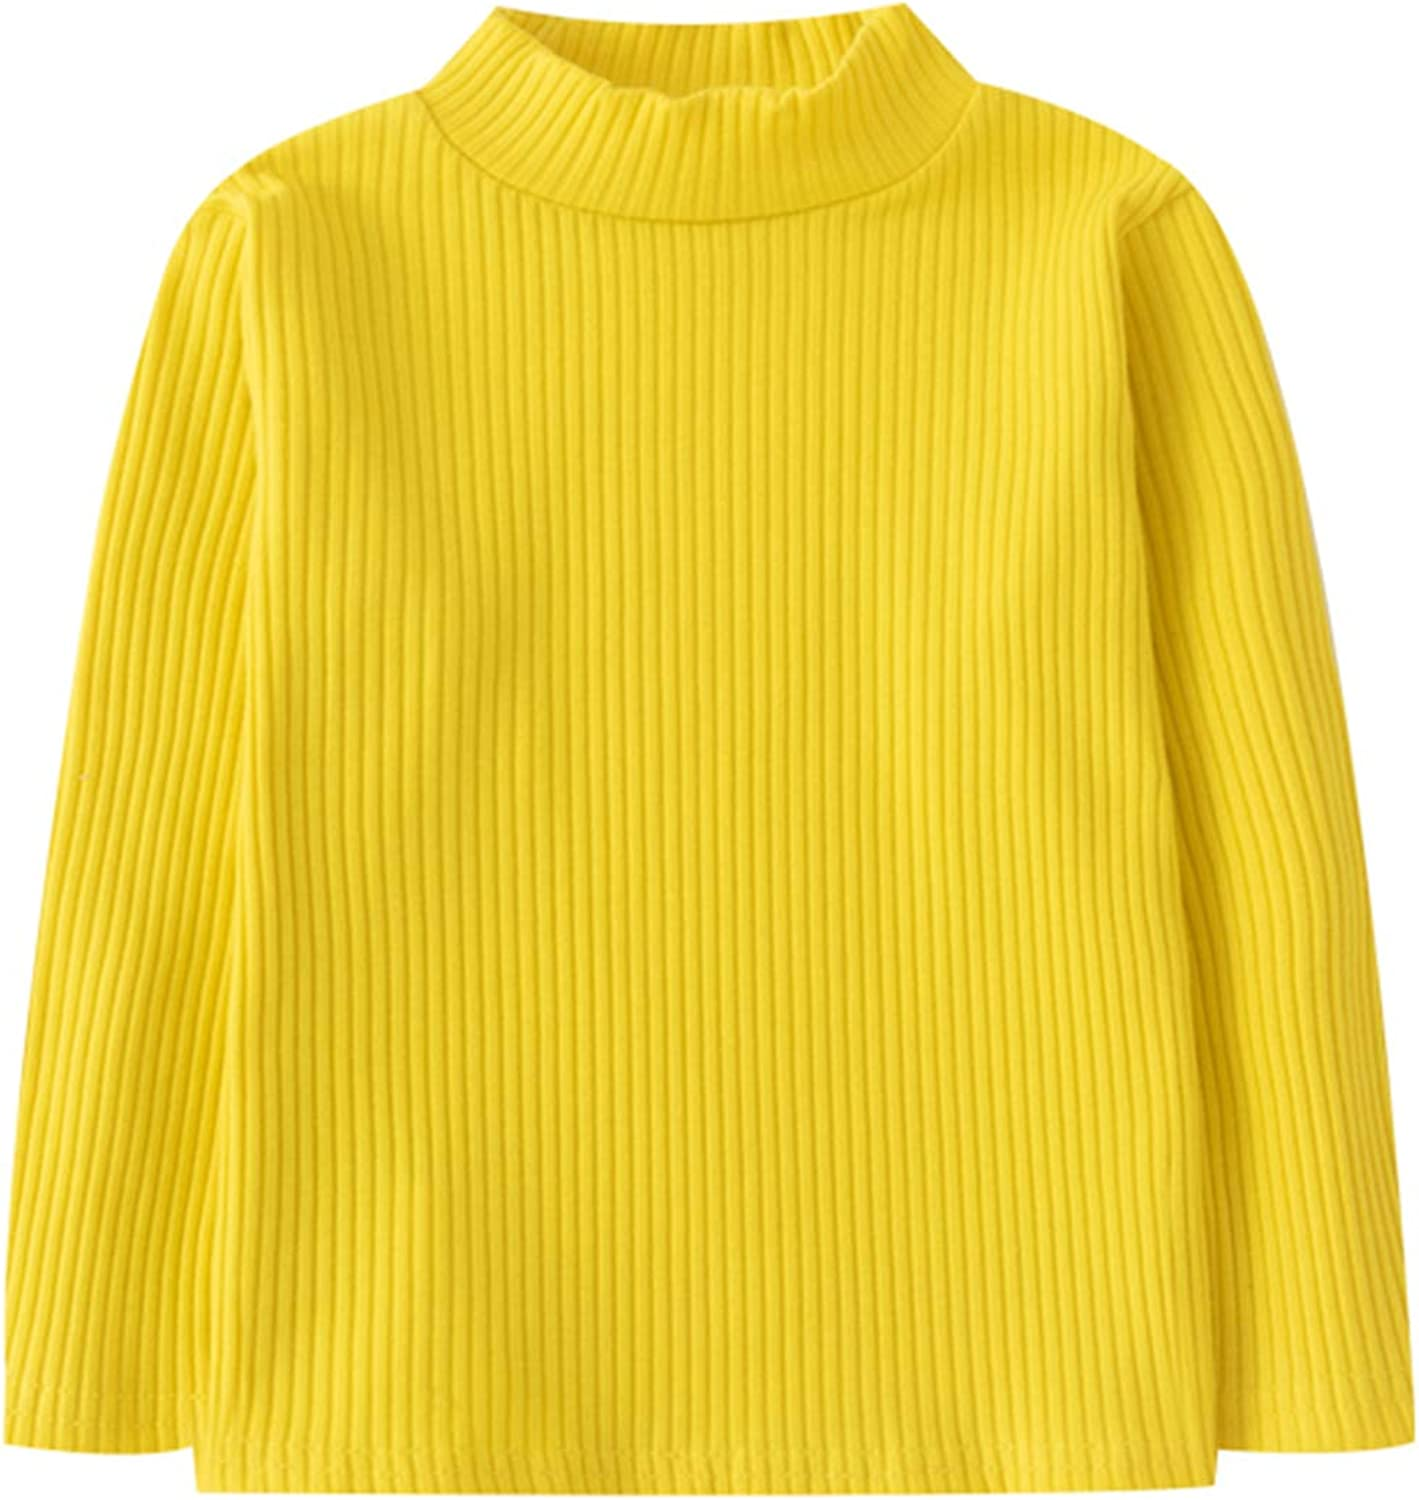 Hstyle Unisex Baby Cotton Turtleneck Shirts Baby Long Sleeve Shirts Basic Solid Color Plain Stripe Tops